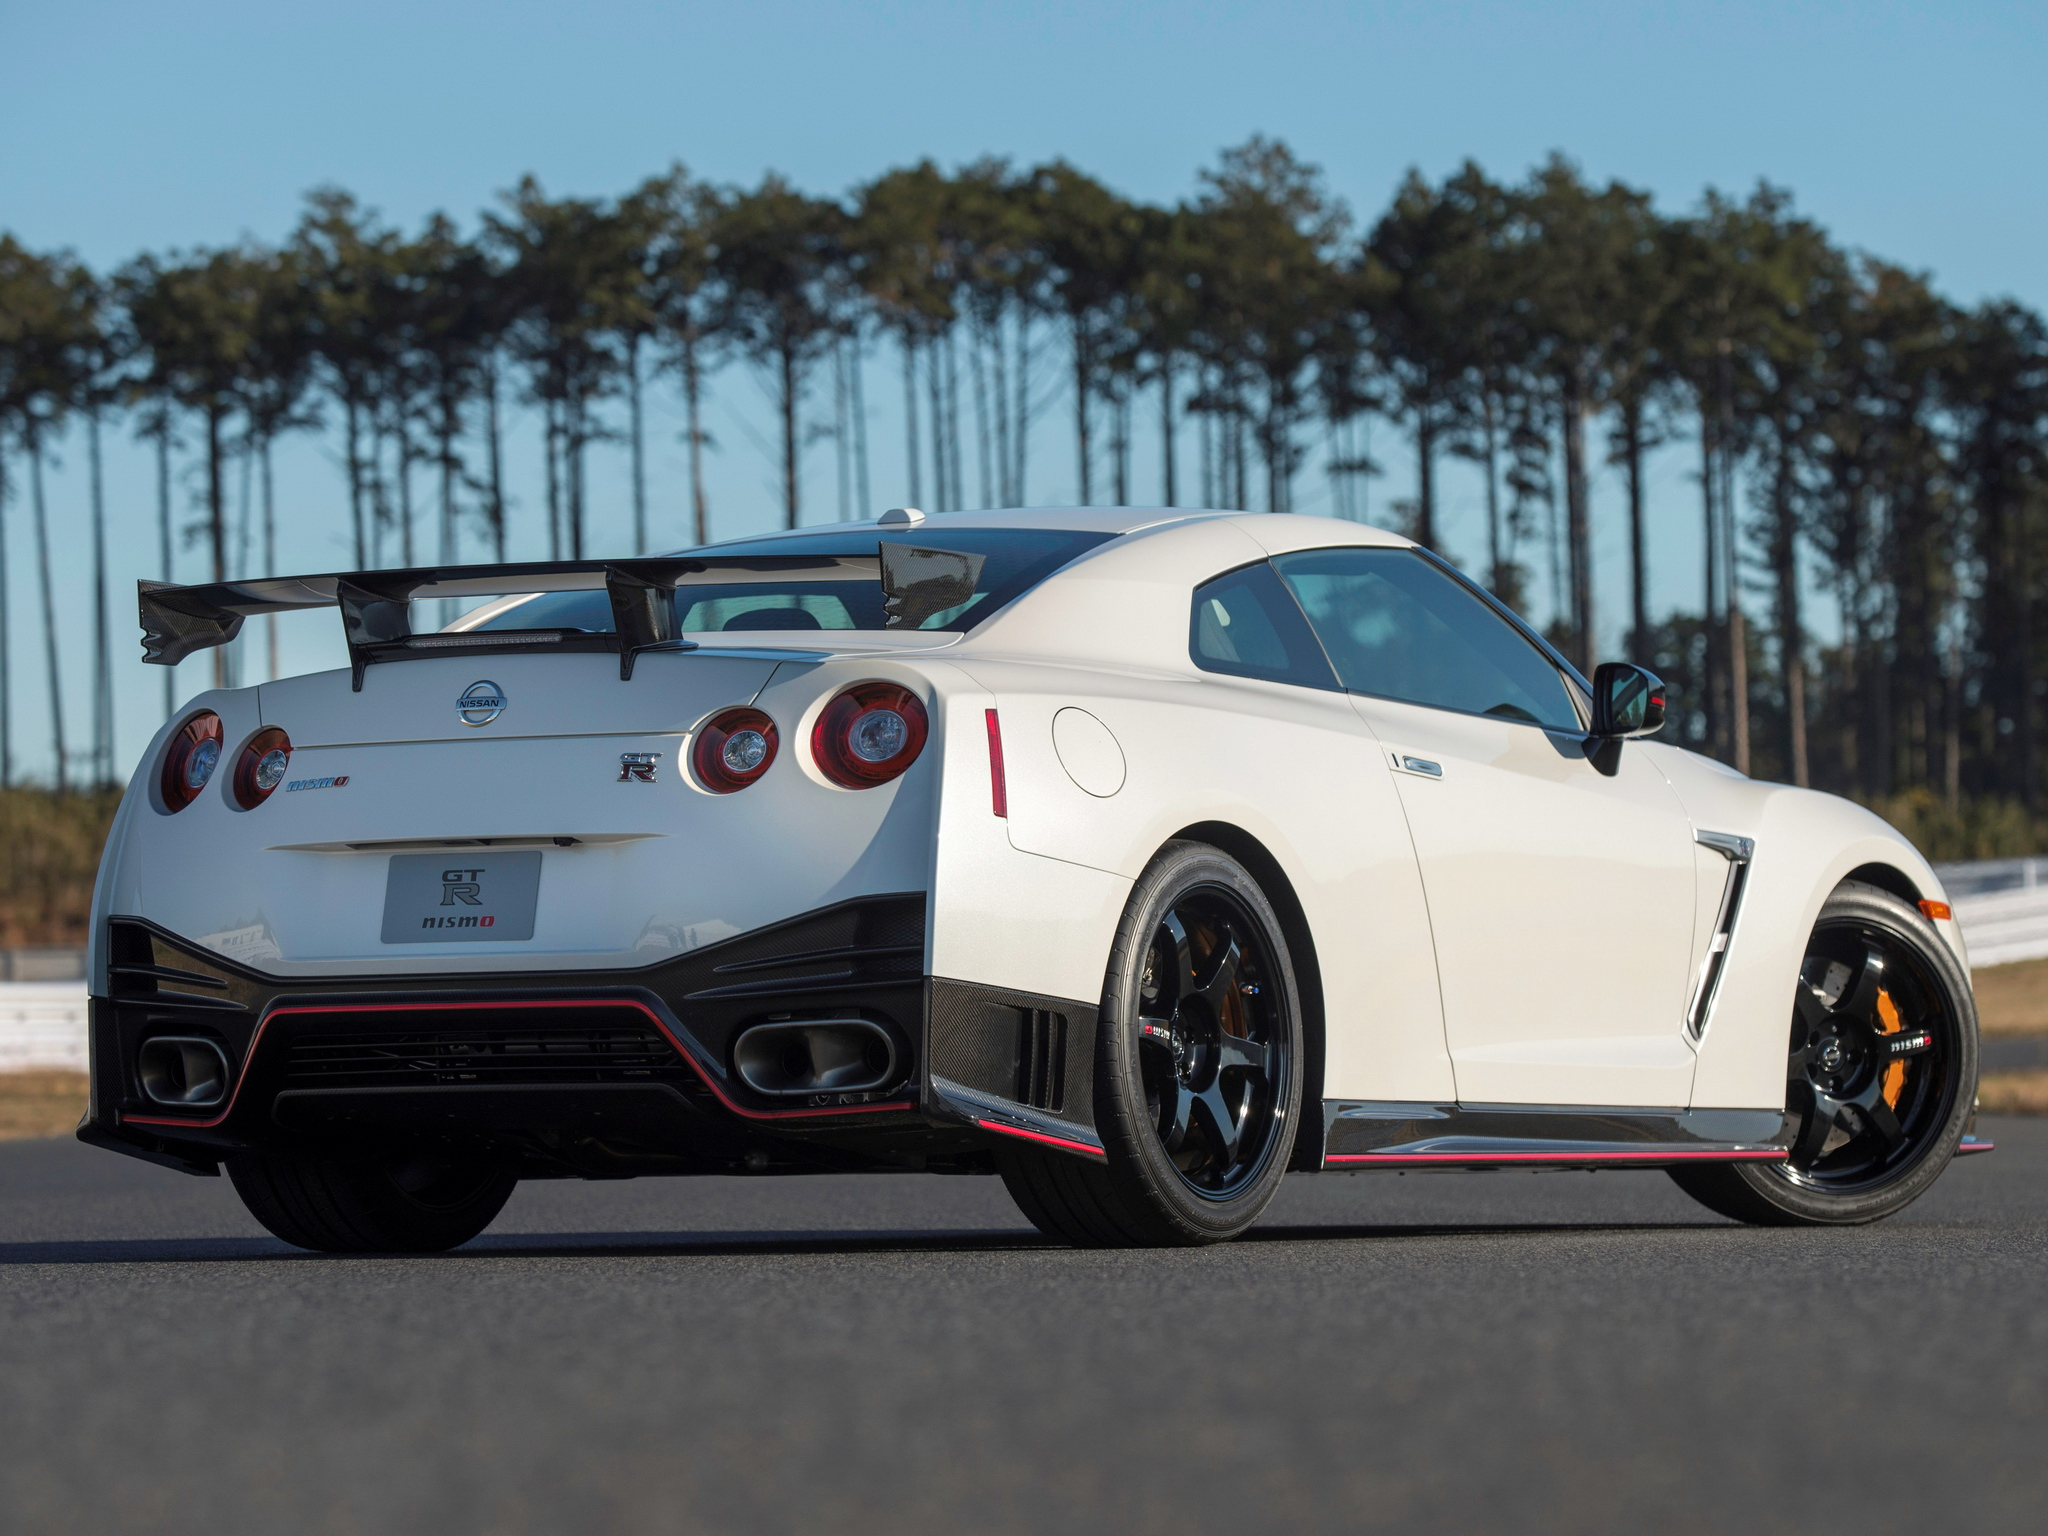 nismo gtr wallpaper wallpapersafari. Black Bedroom Furniture Sets. Home Design Ideas